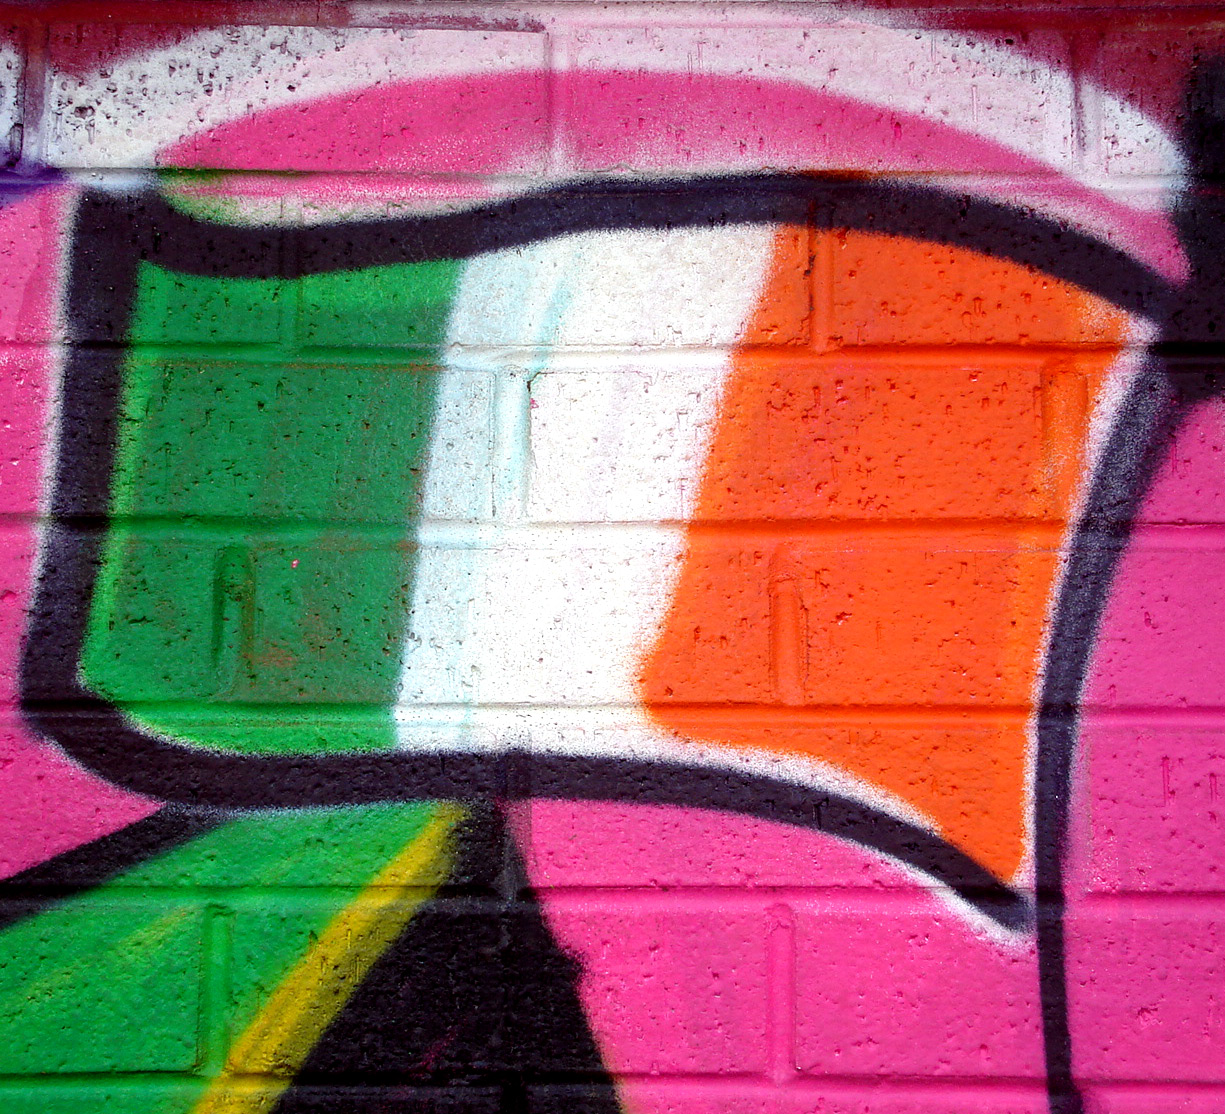 the graffiti is on the wall images indymedia ireland